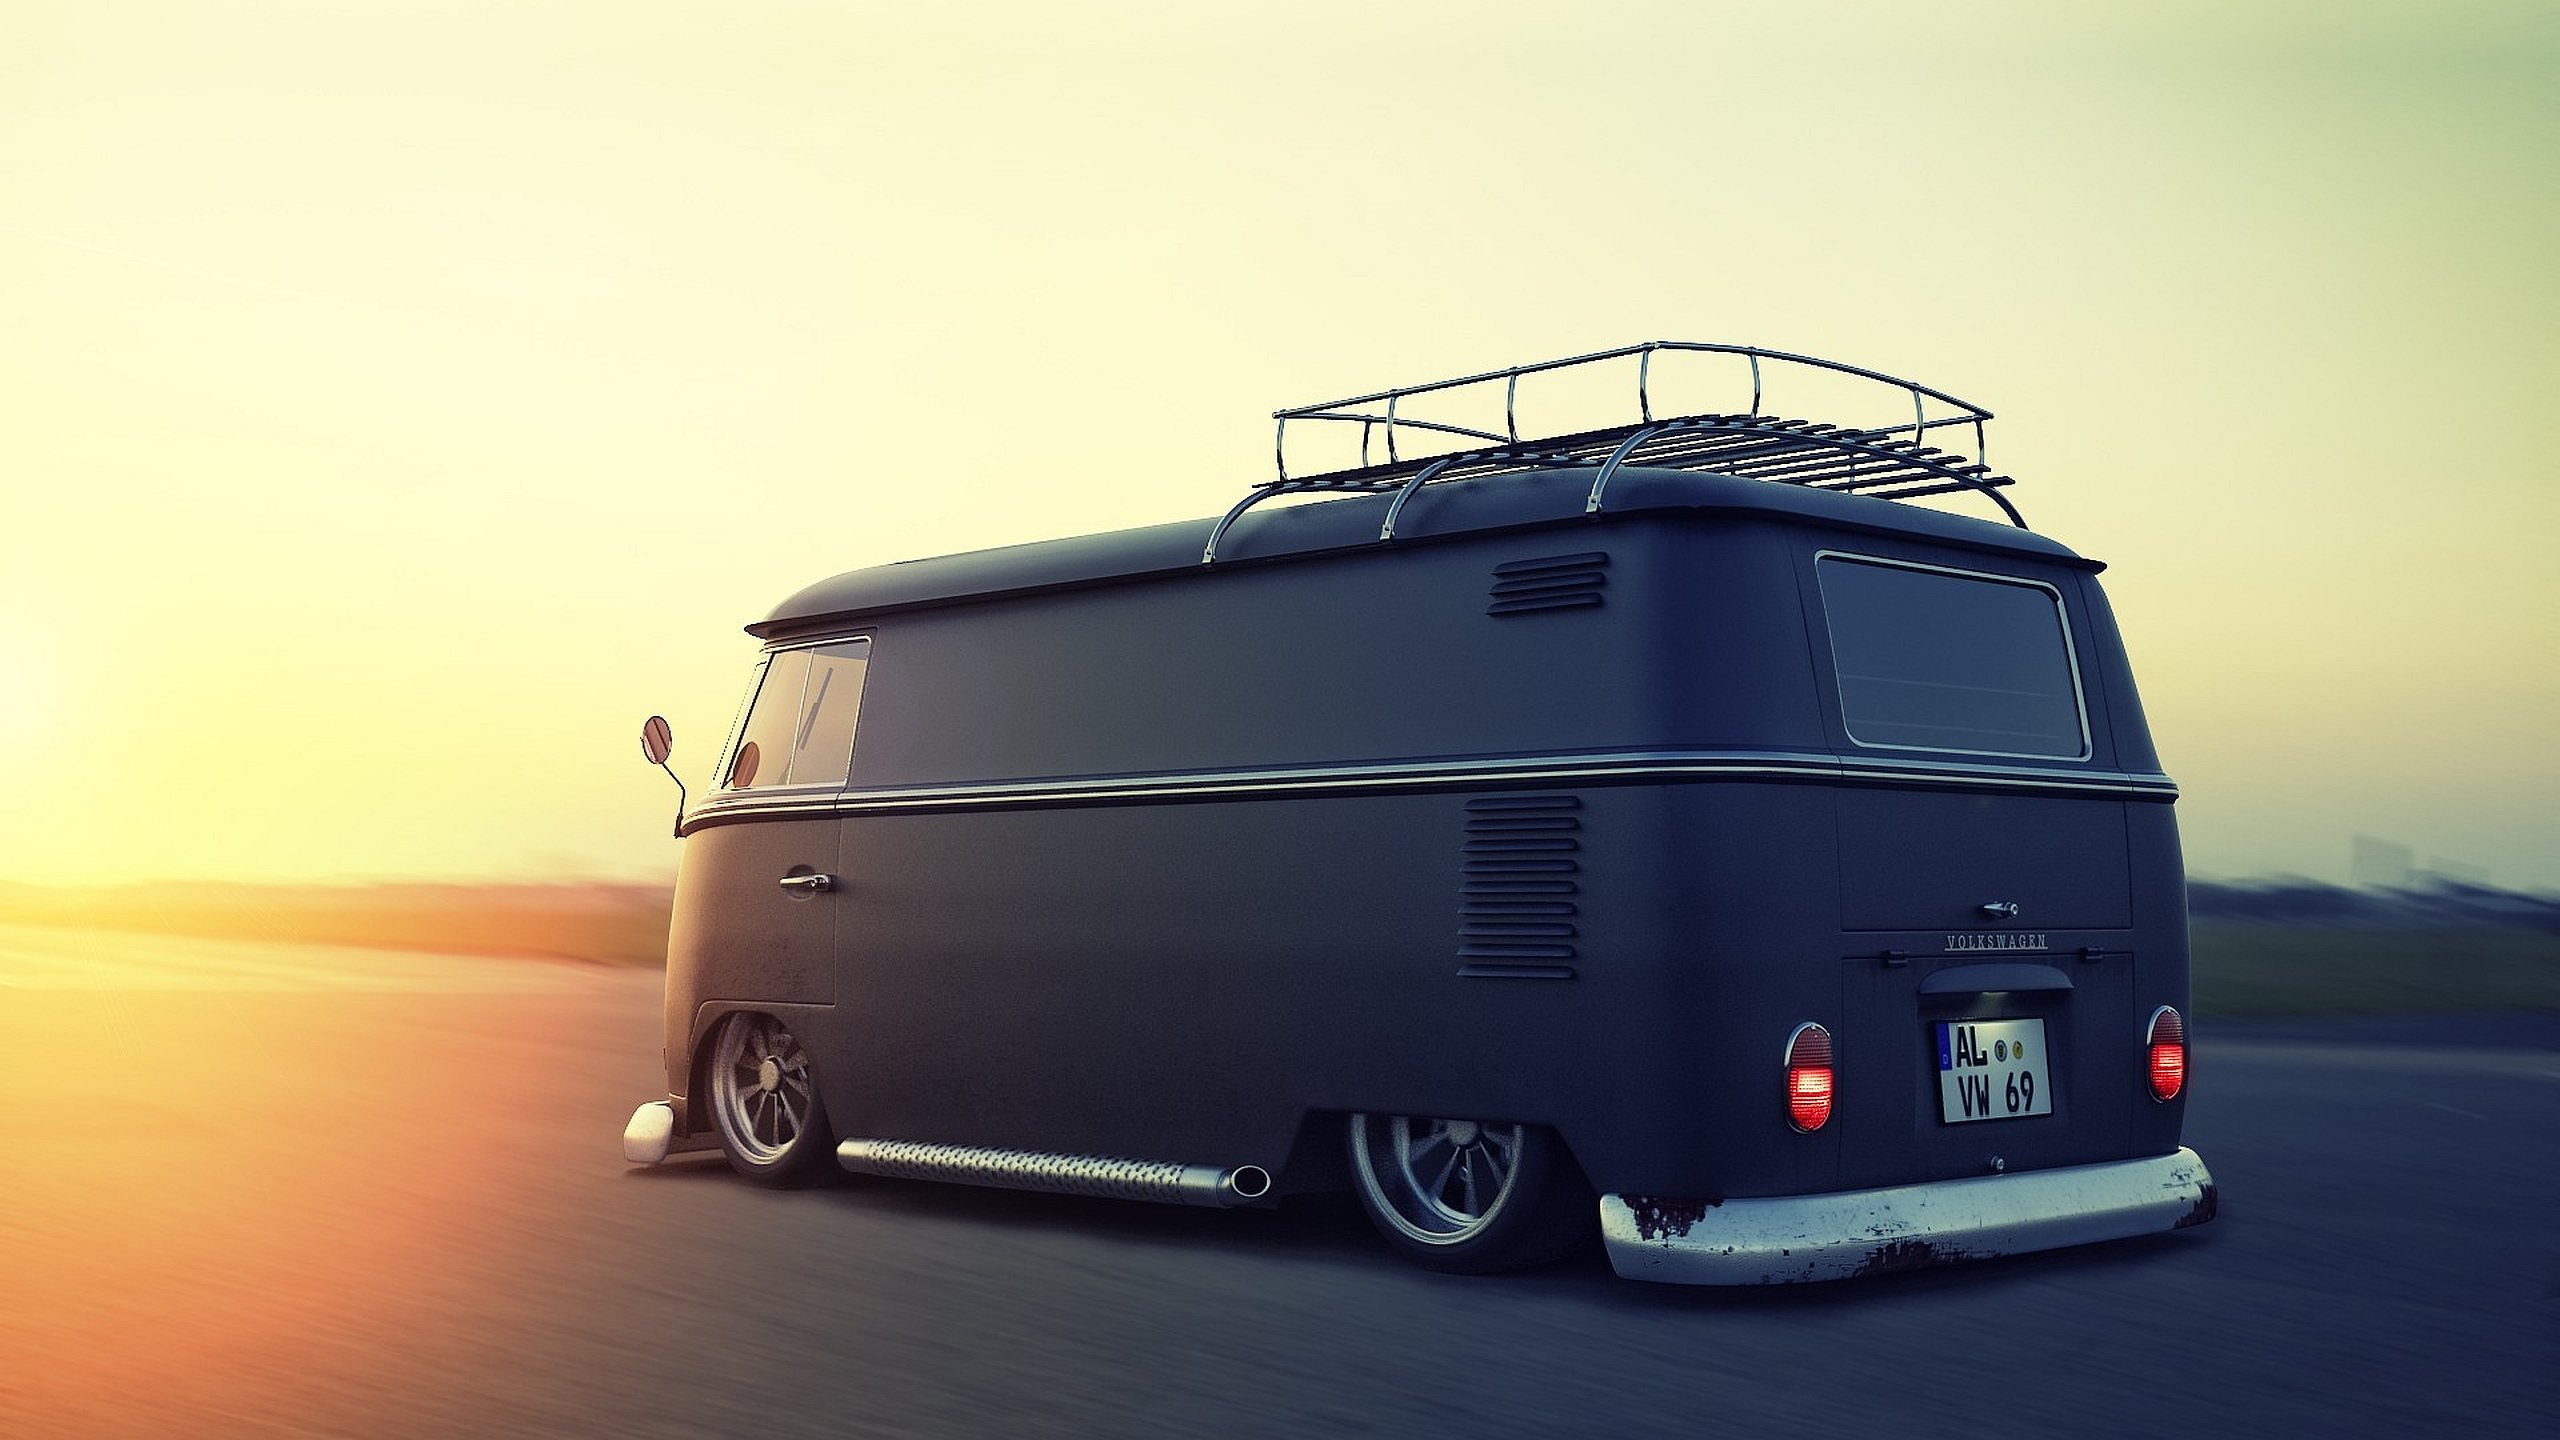 9 Volkswagen Microbus HD Wallpapers | Background Images - Wallpaper Abyss